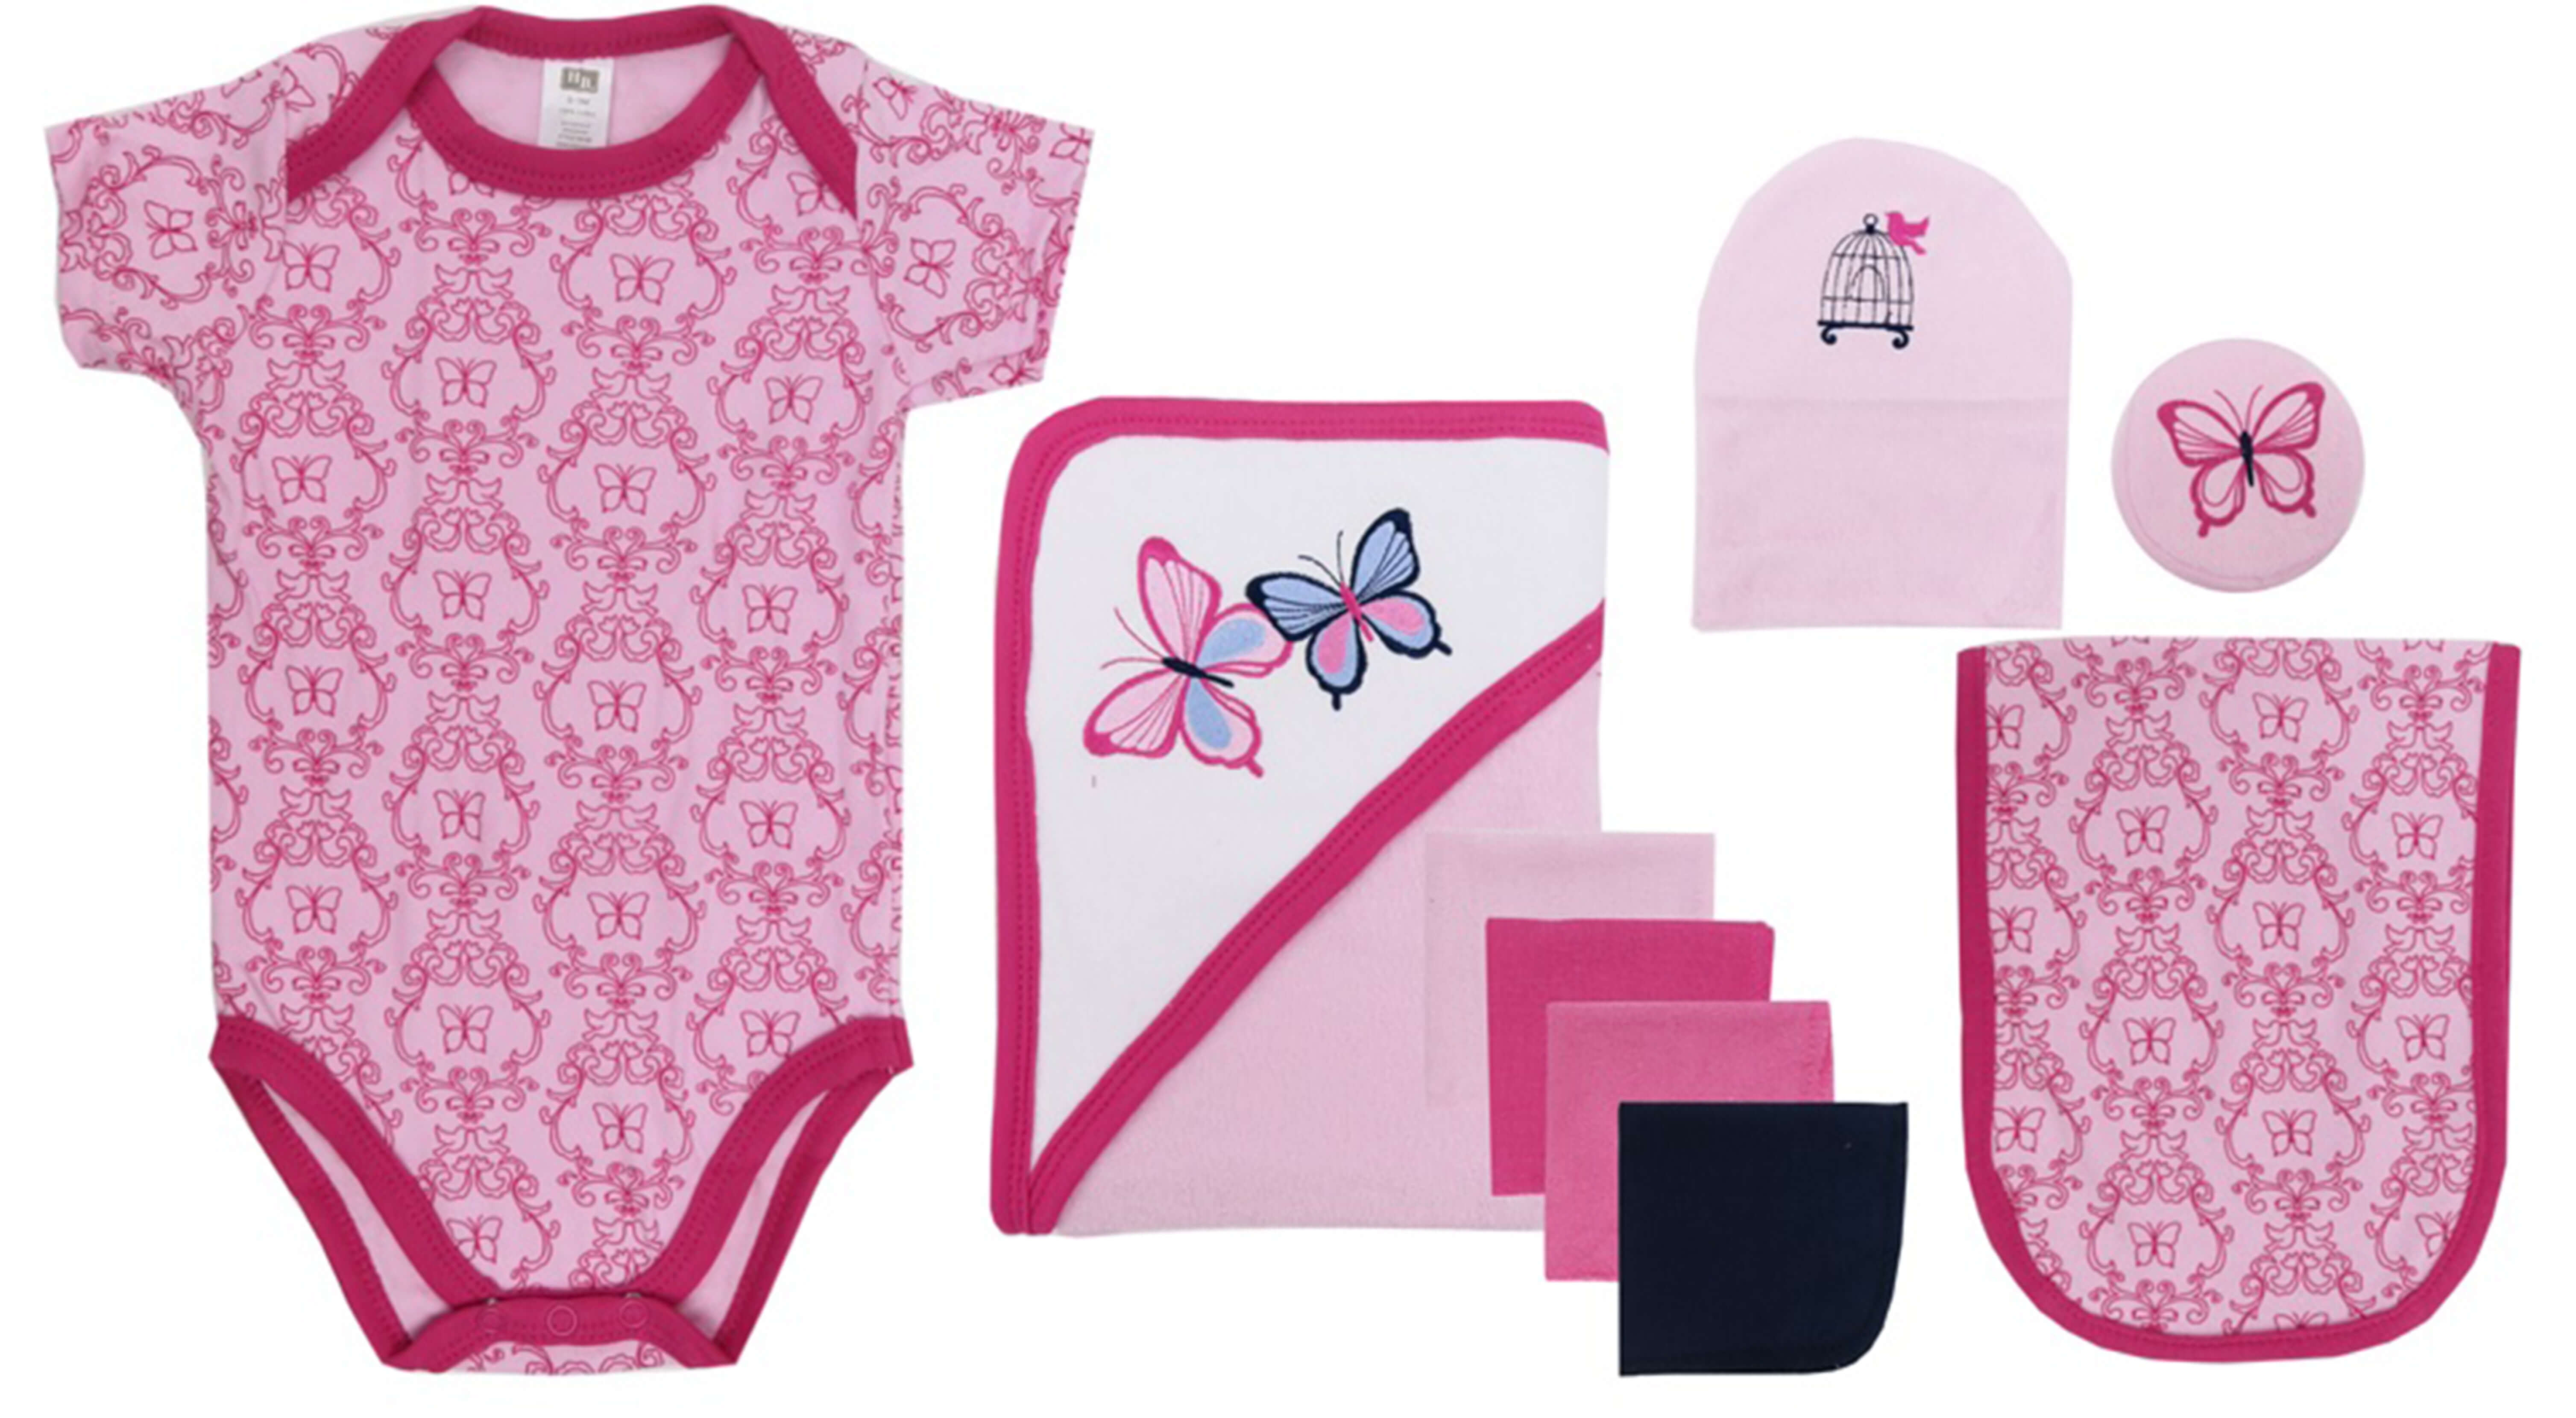 Hudson Baby - Bath Time Gift Box Set - Pink Butterfly